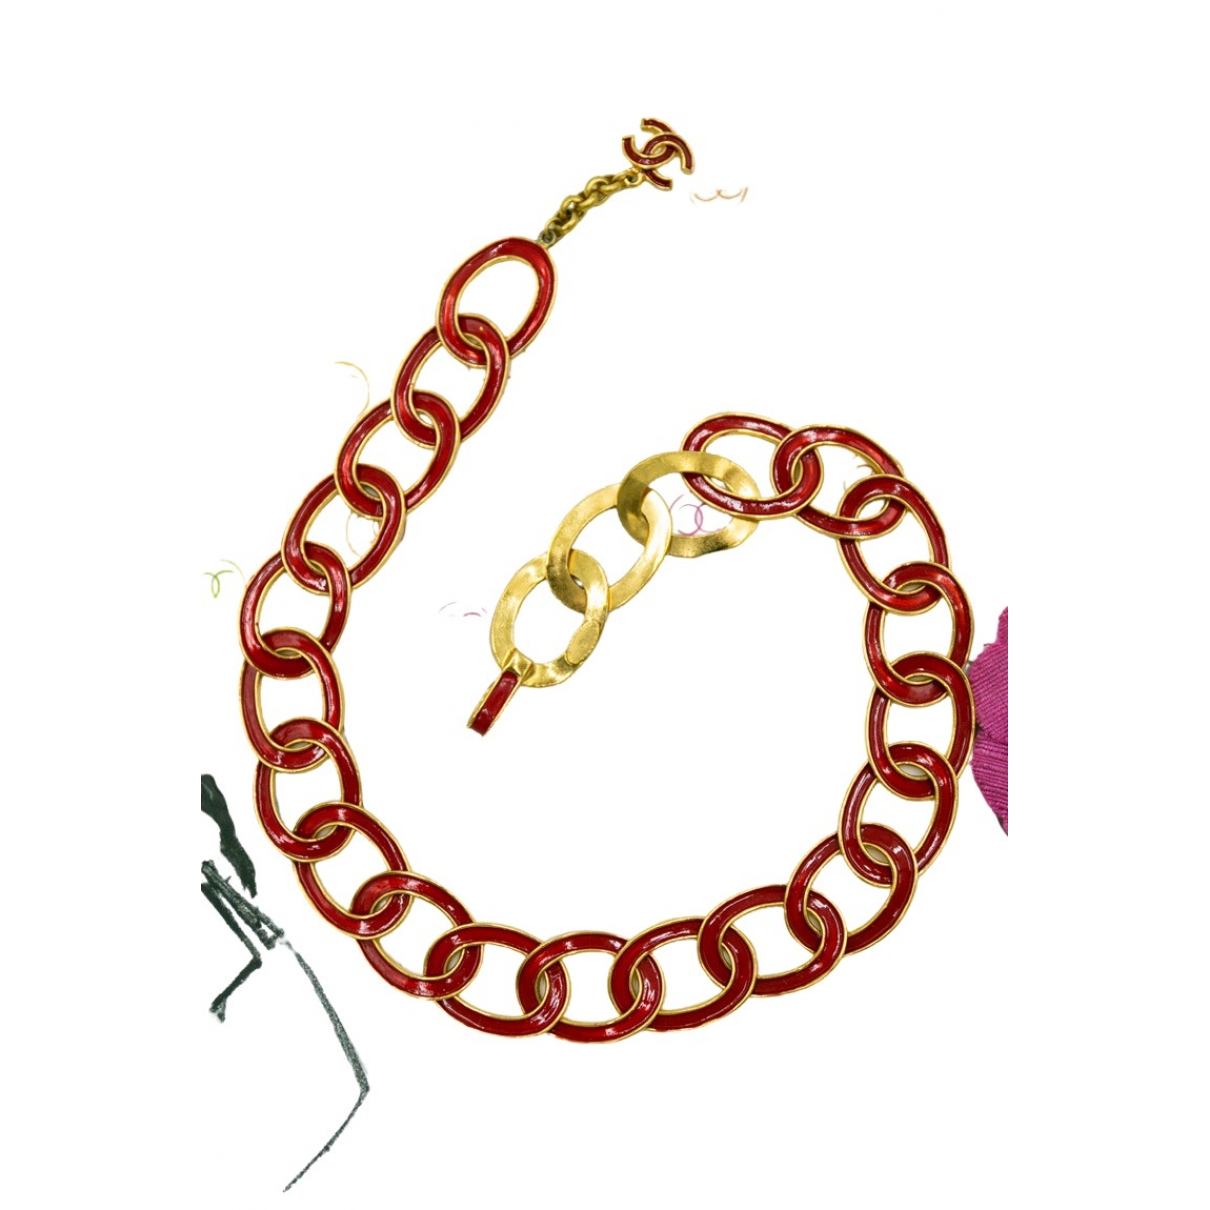 Chanel Baroque Kette in  Rot Metall